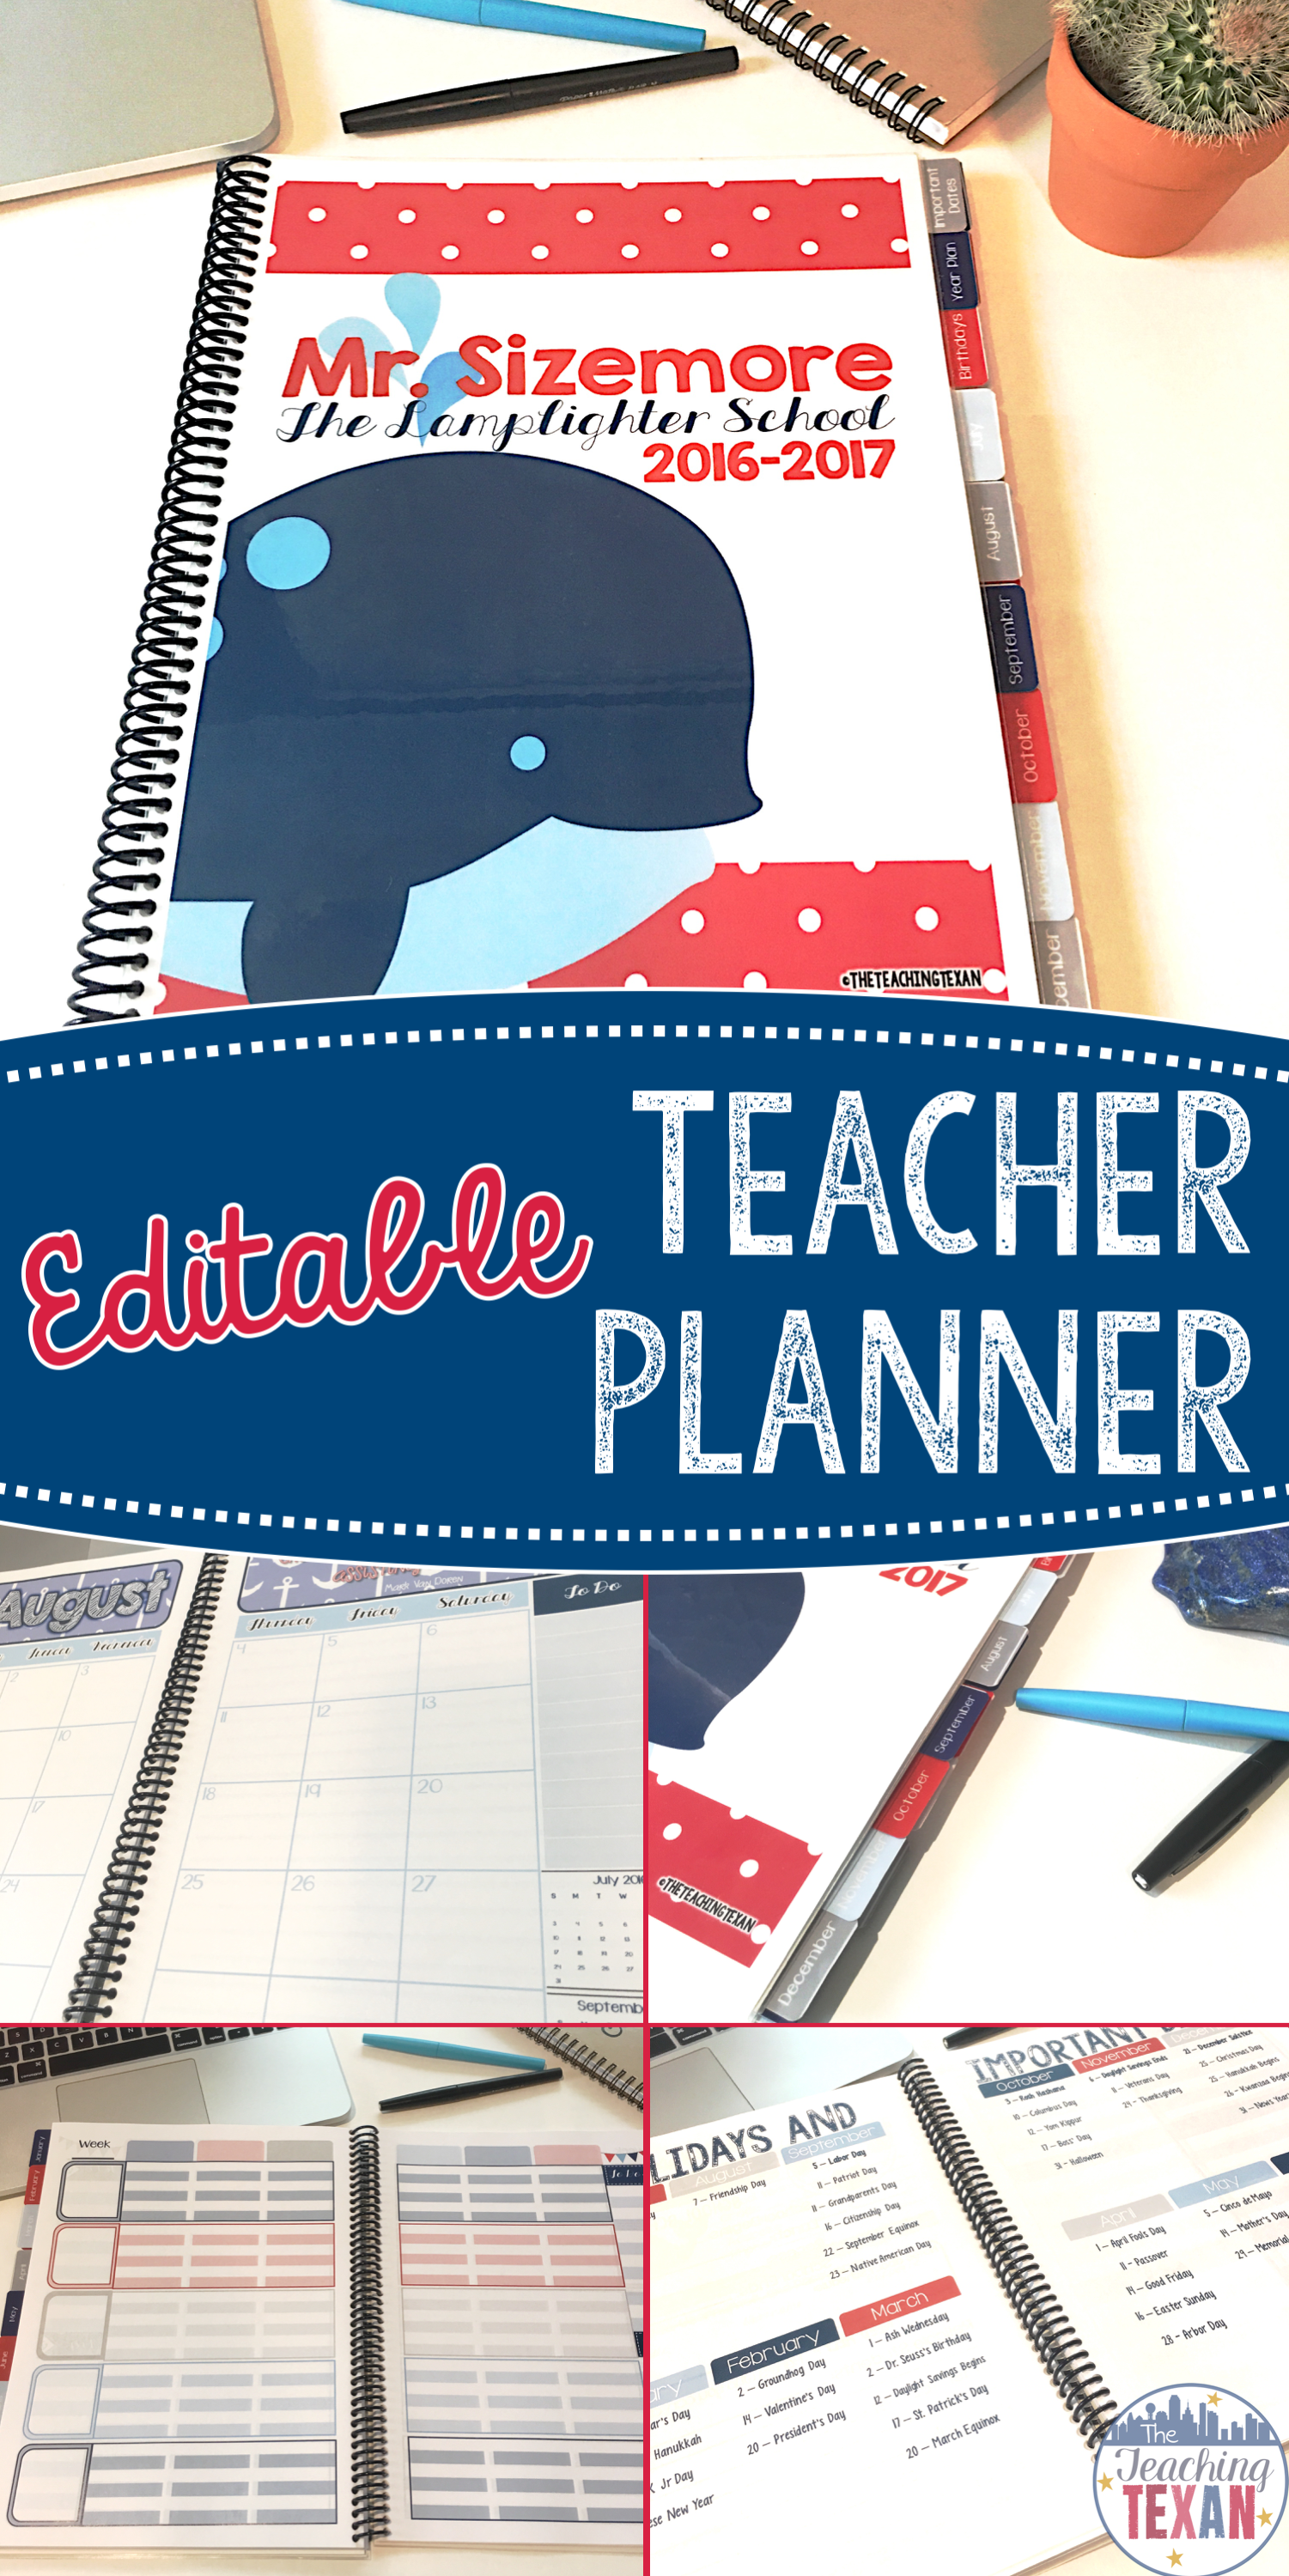 Looking for a one stop spot for teacher organization?  This editable teacher planner is the best solution for elementary and secondary teachers.  This printable Nautical theme planner can be bound or stored in a binder - your choice!  Great choice for a teacher who loves DIY!  And the fact it is super cute is an added bonus!